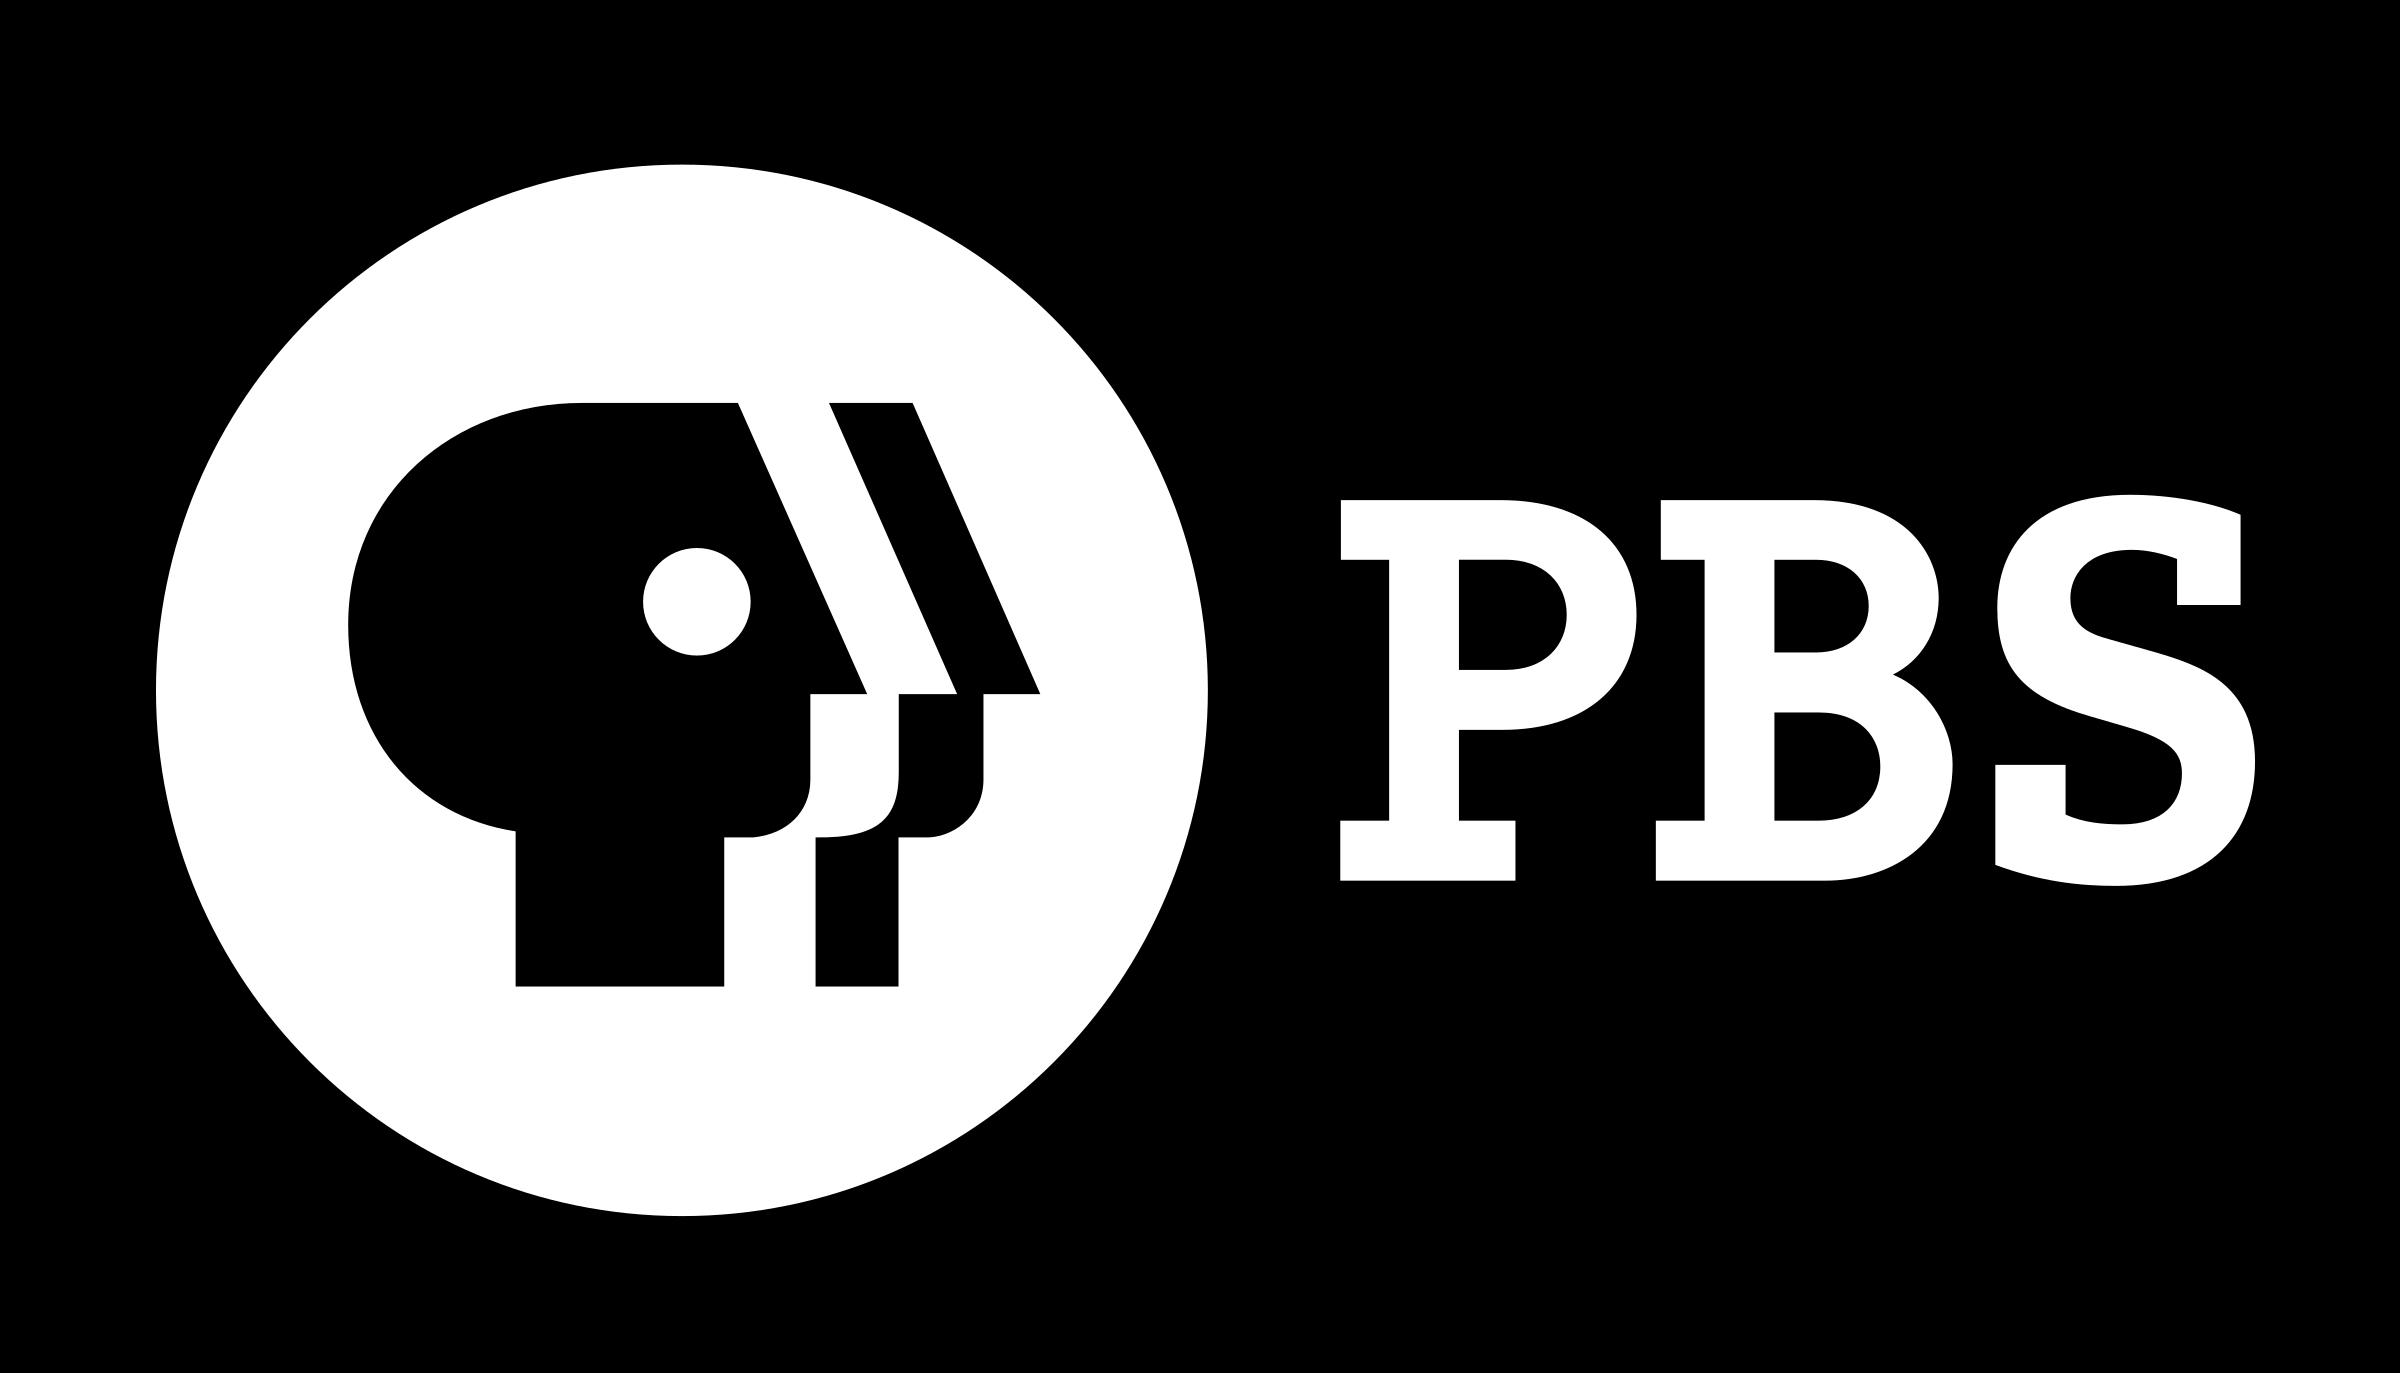 public-broadcasting-service-logo-black-and-white